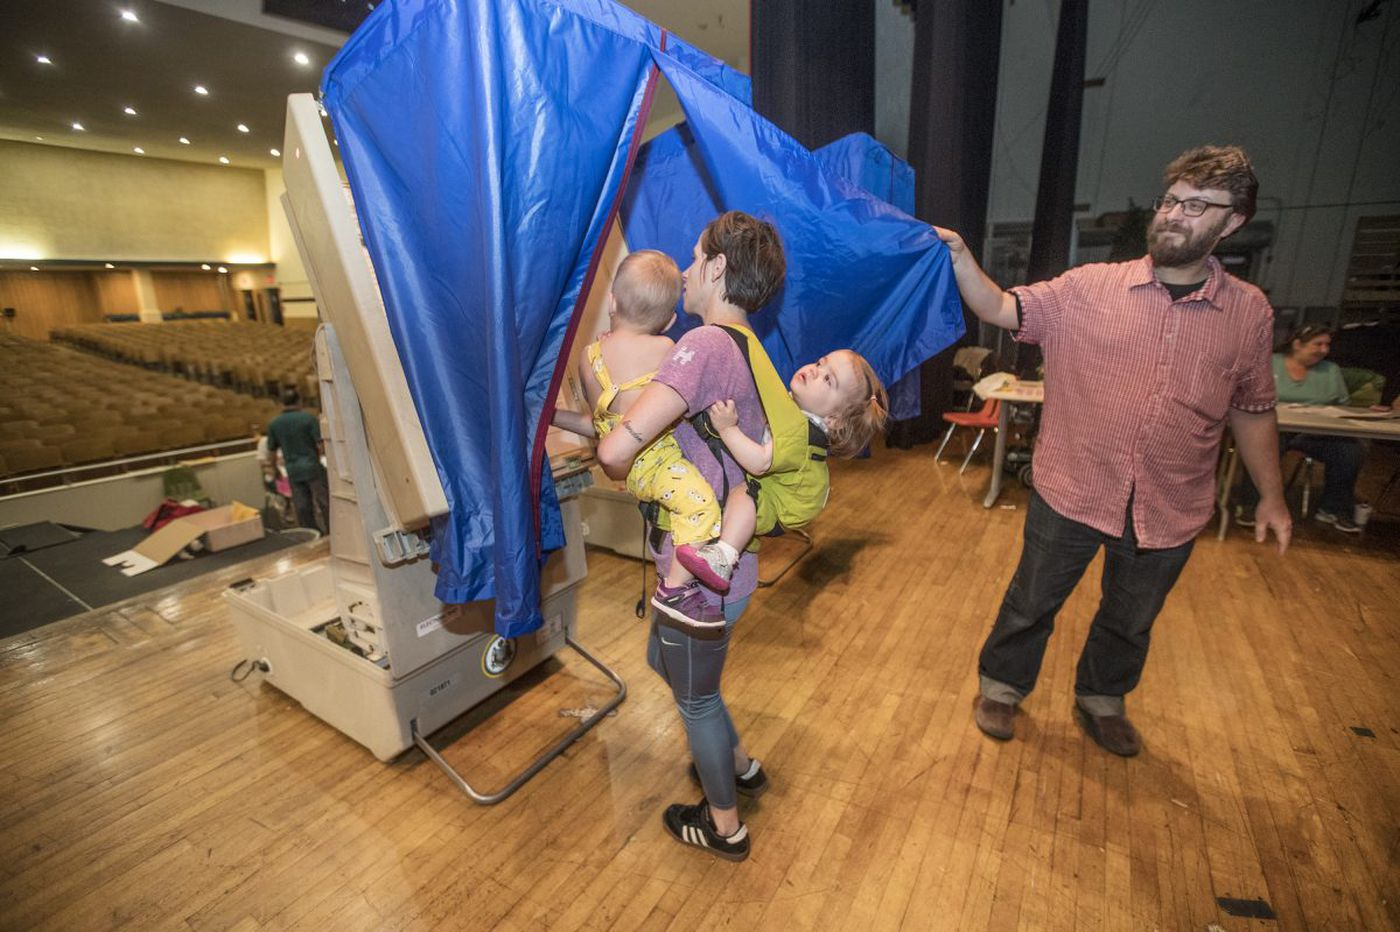 Online voter registration in Pa., three years in: More than 1 in 5 voters register online